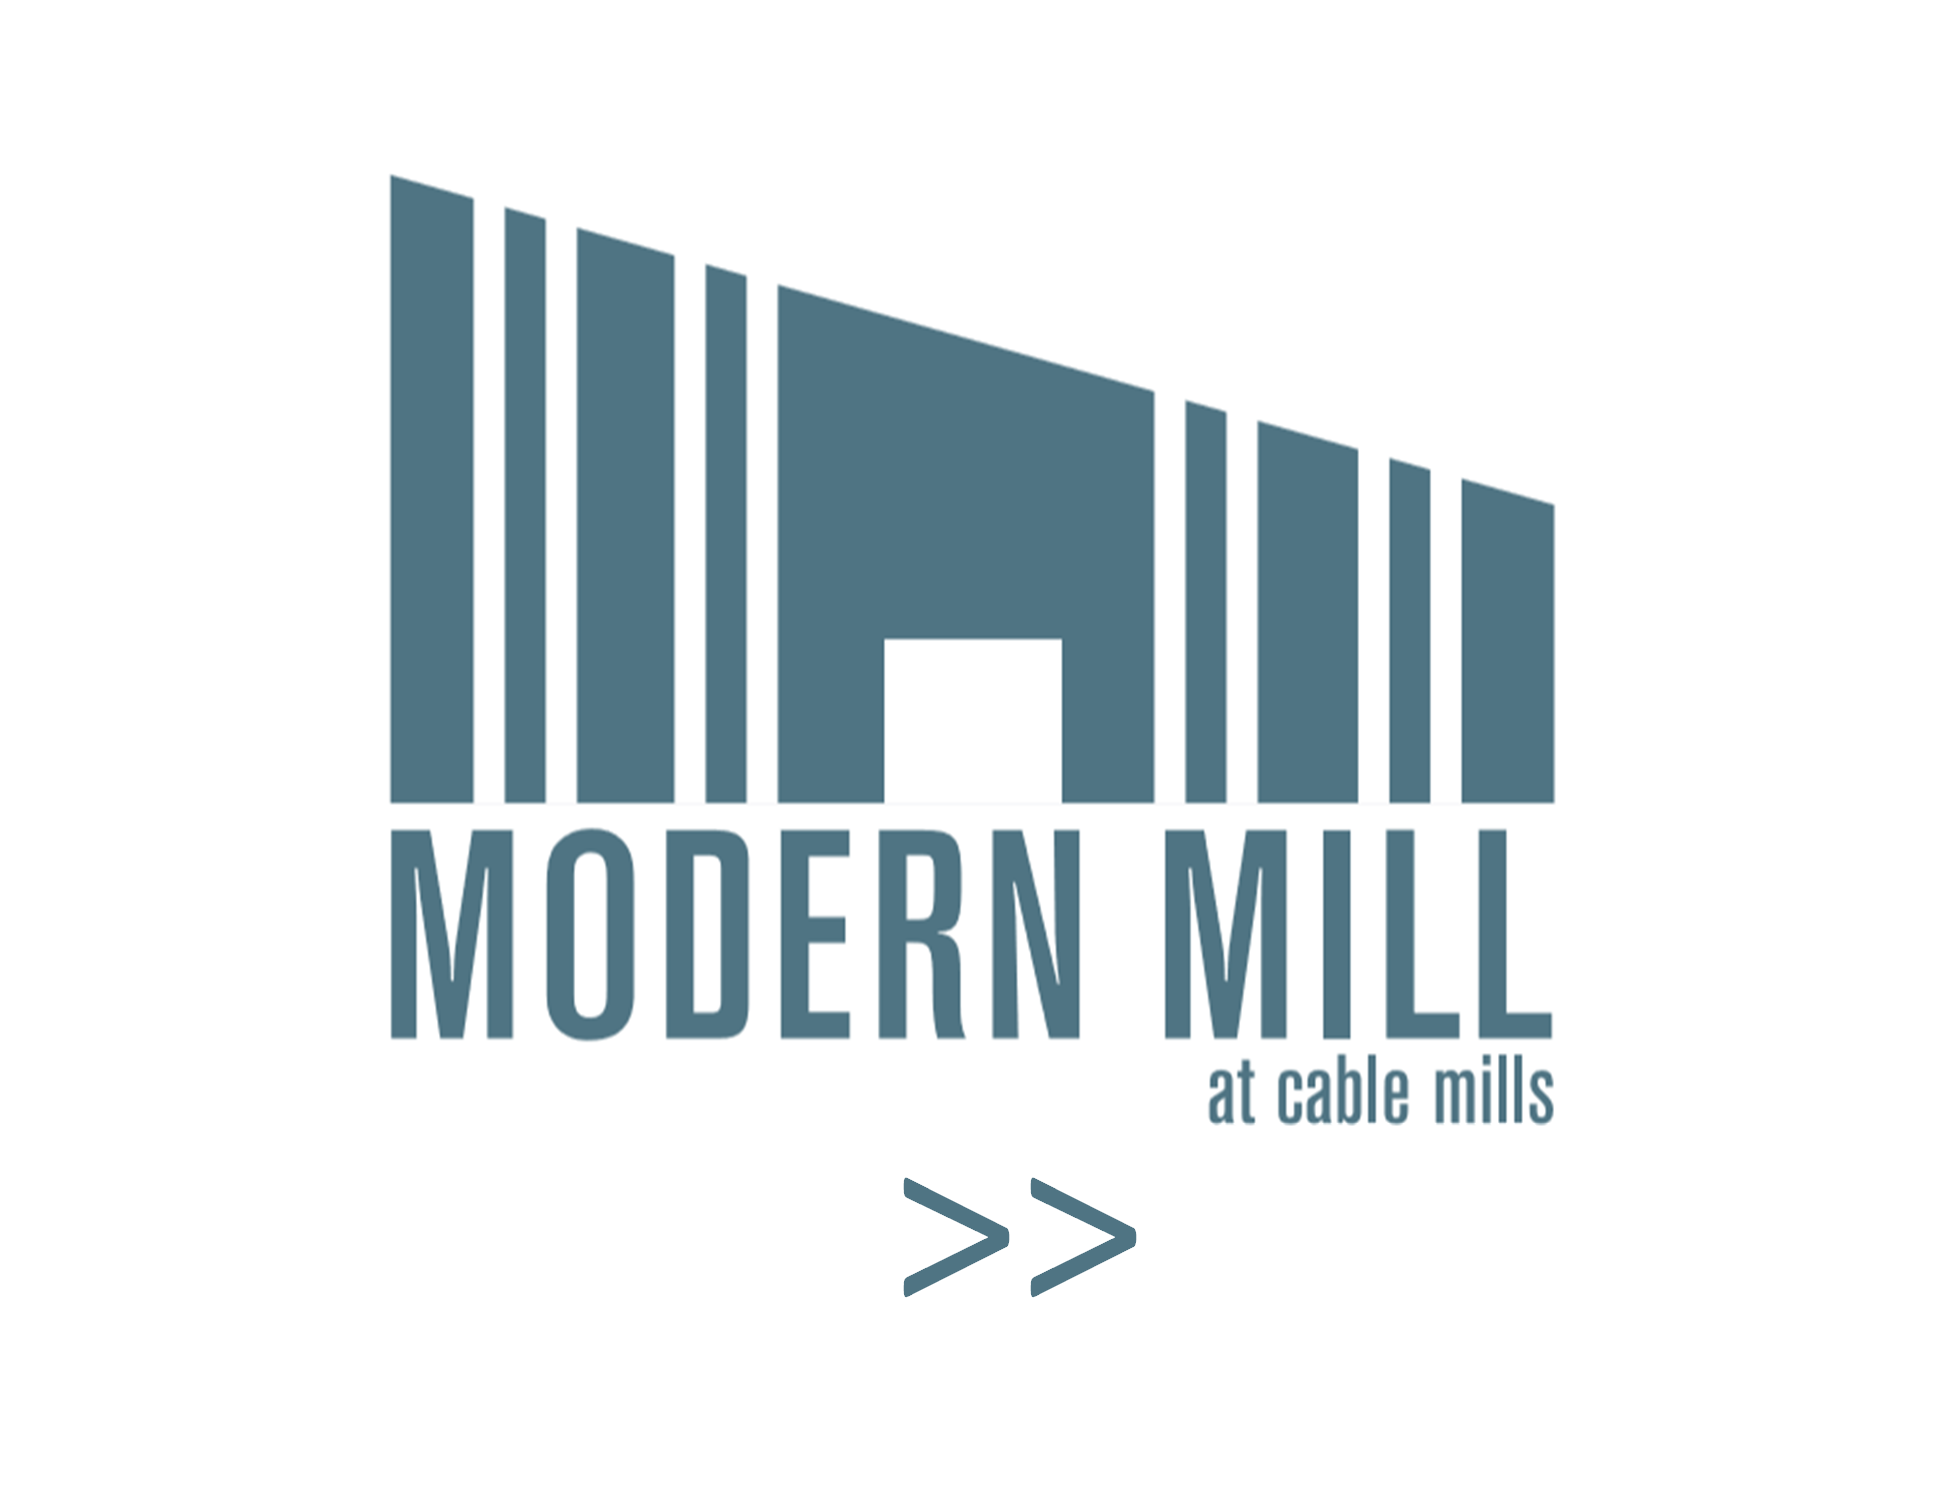 The Modern Mill is a contemporary take on the traditional Mill building, creating 6, single level living lofts in a fully accessible, elevator building.